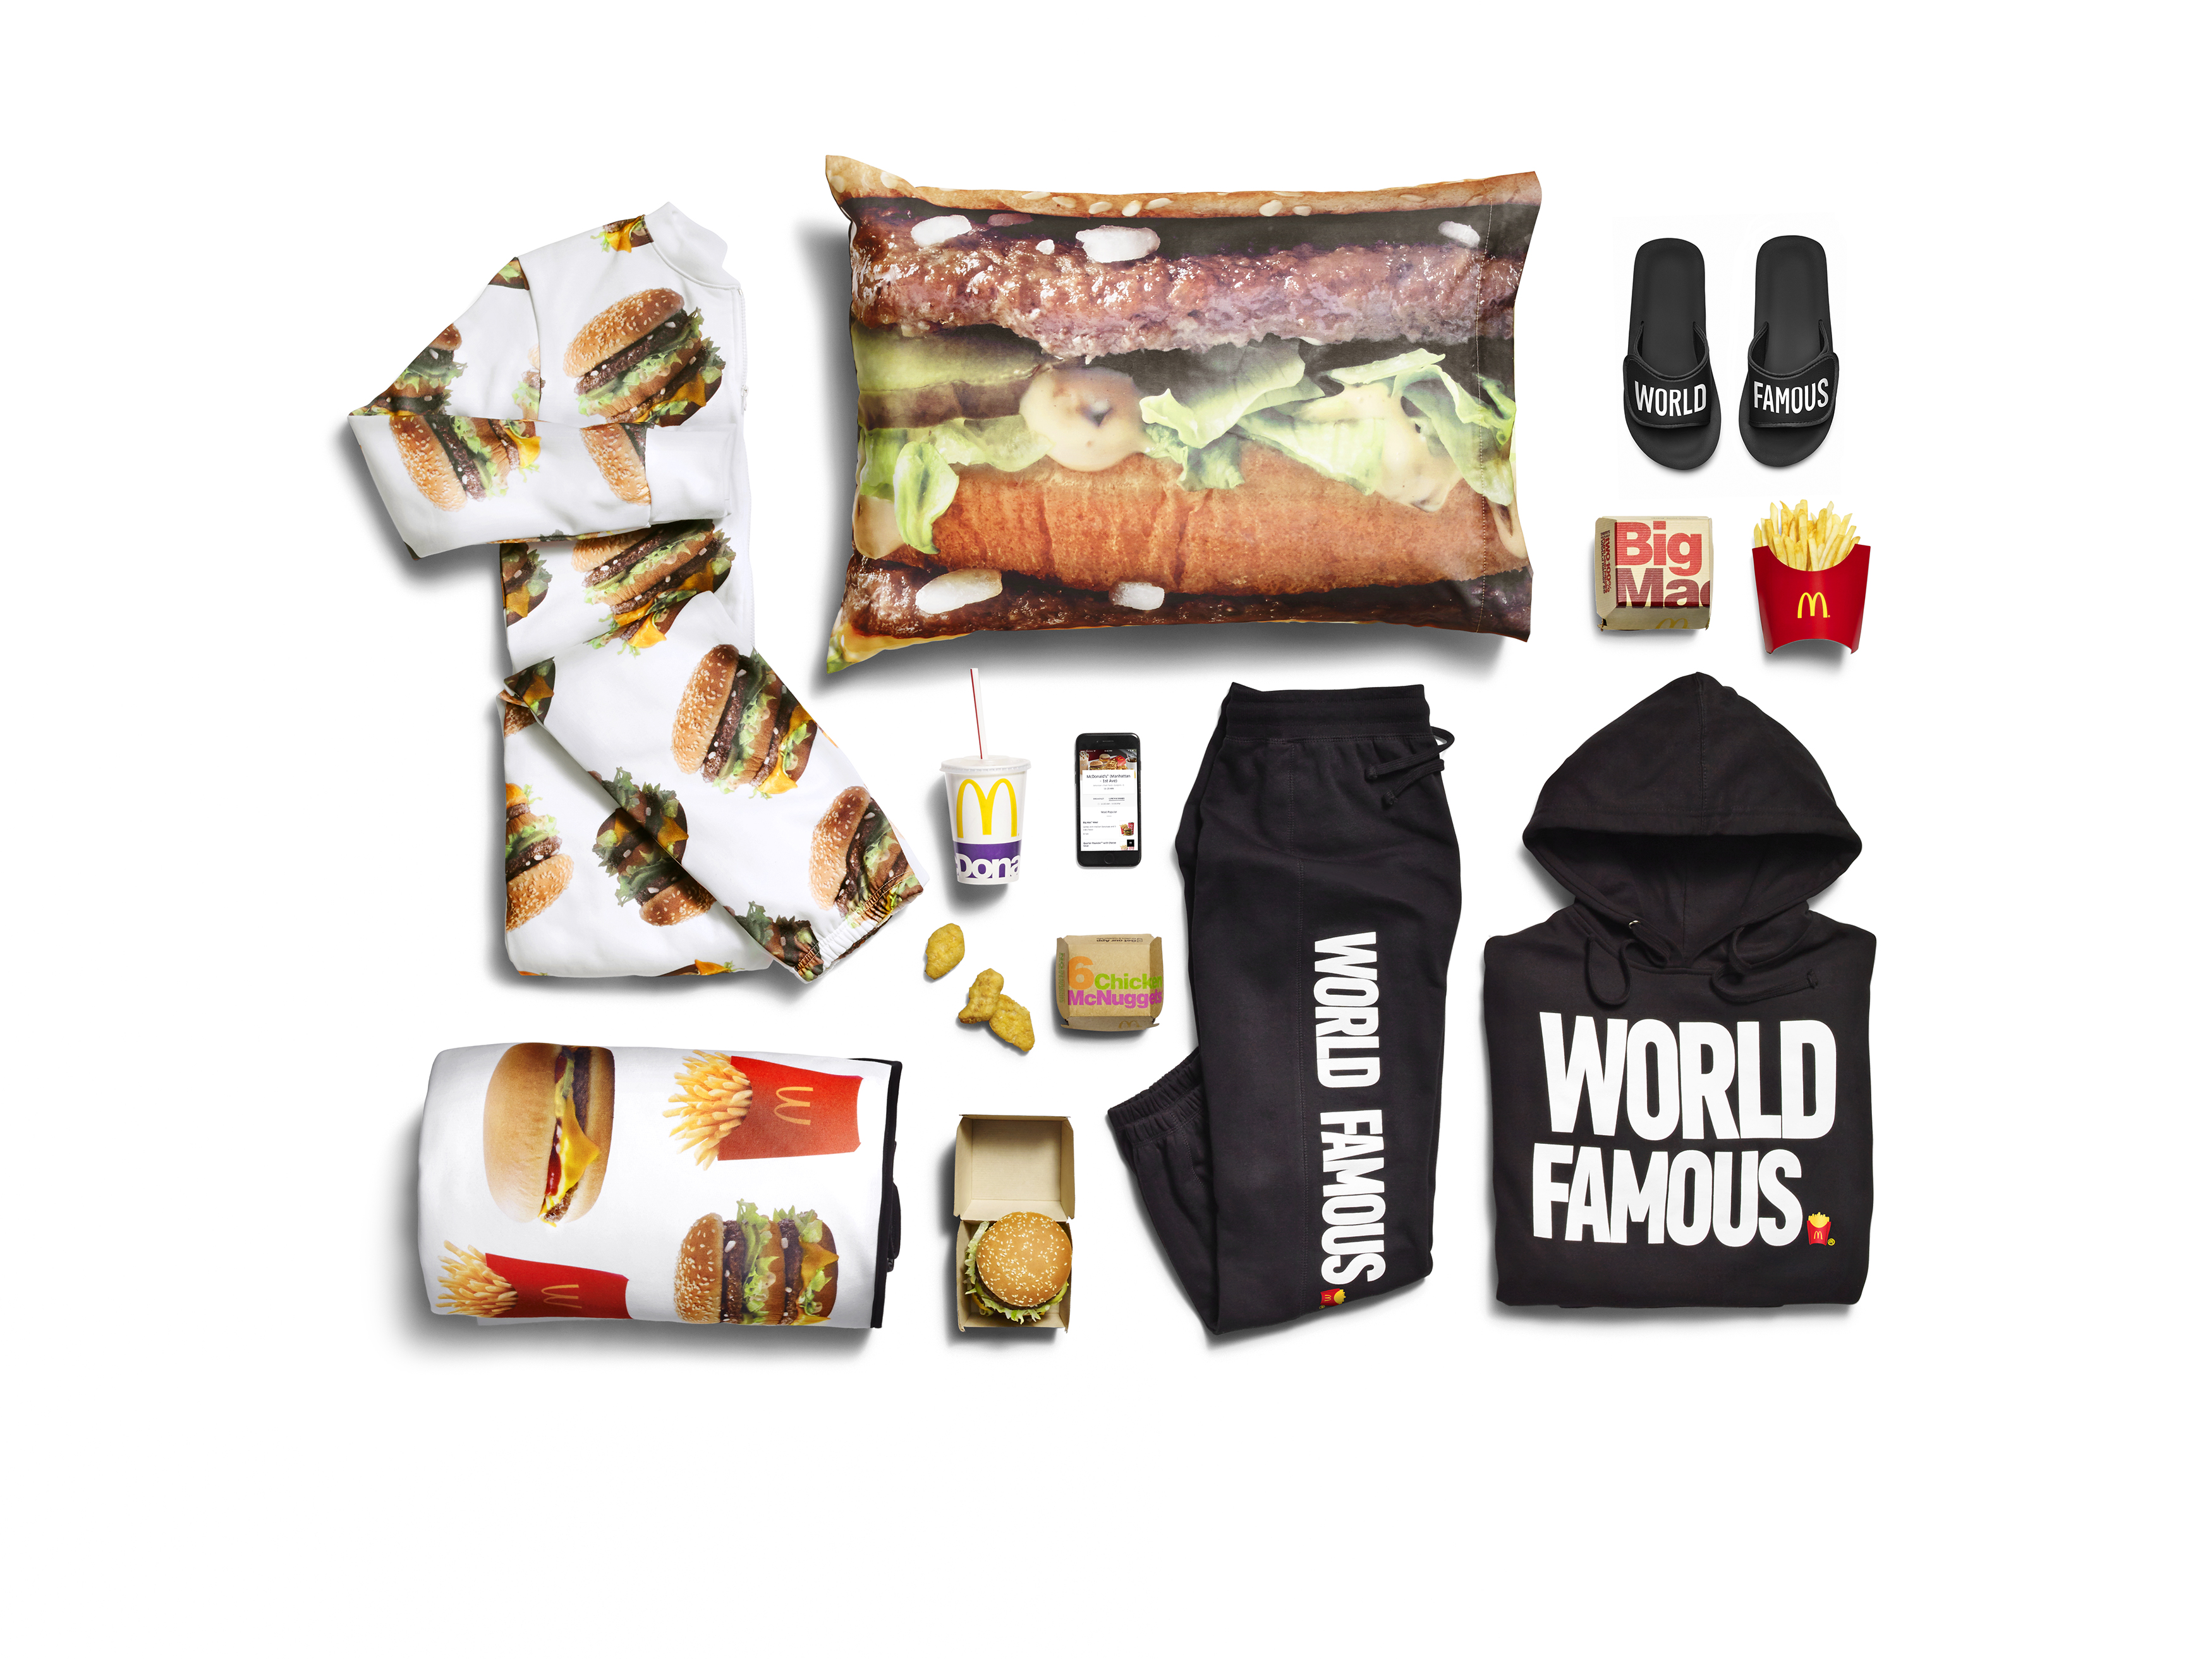 McDonalds has also had a go at apparel with their limited edition collection